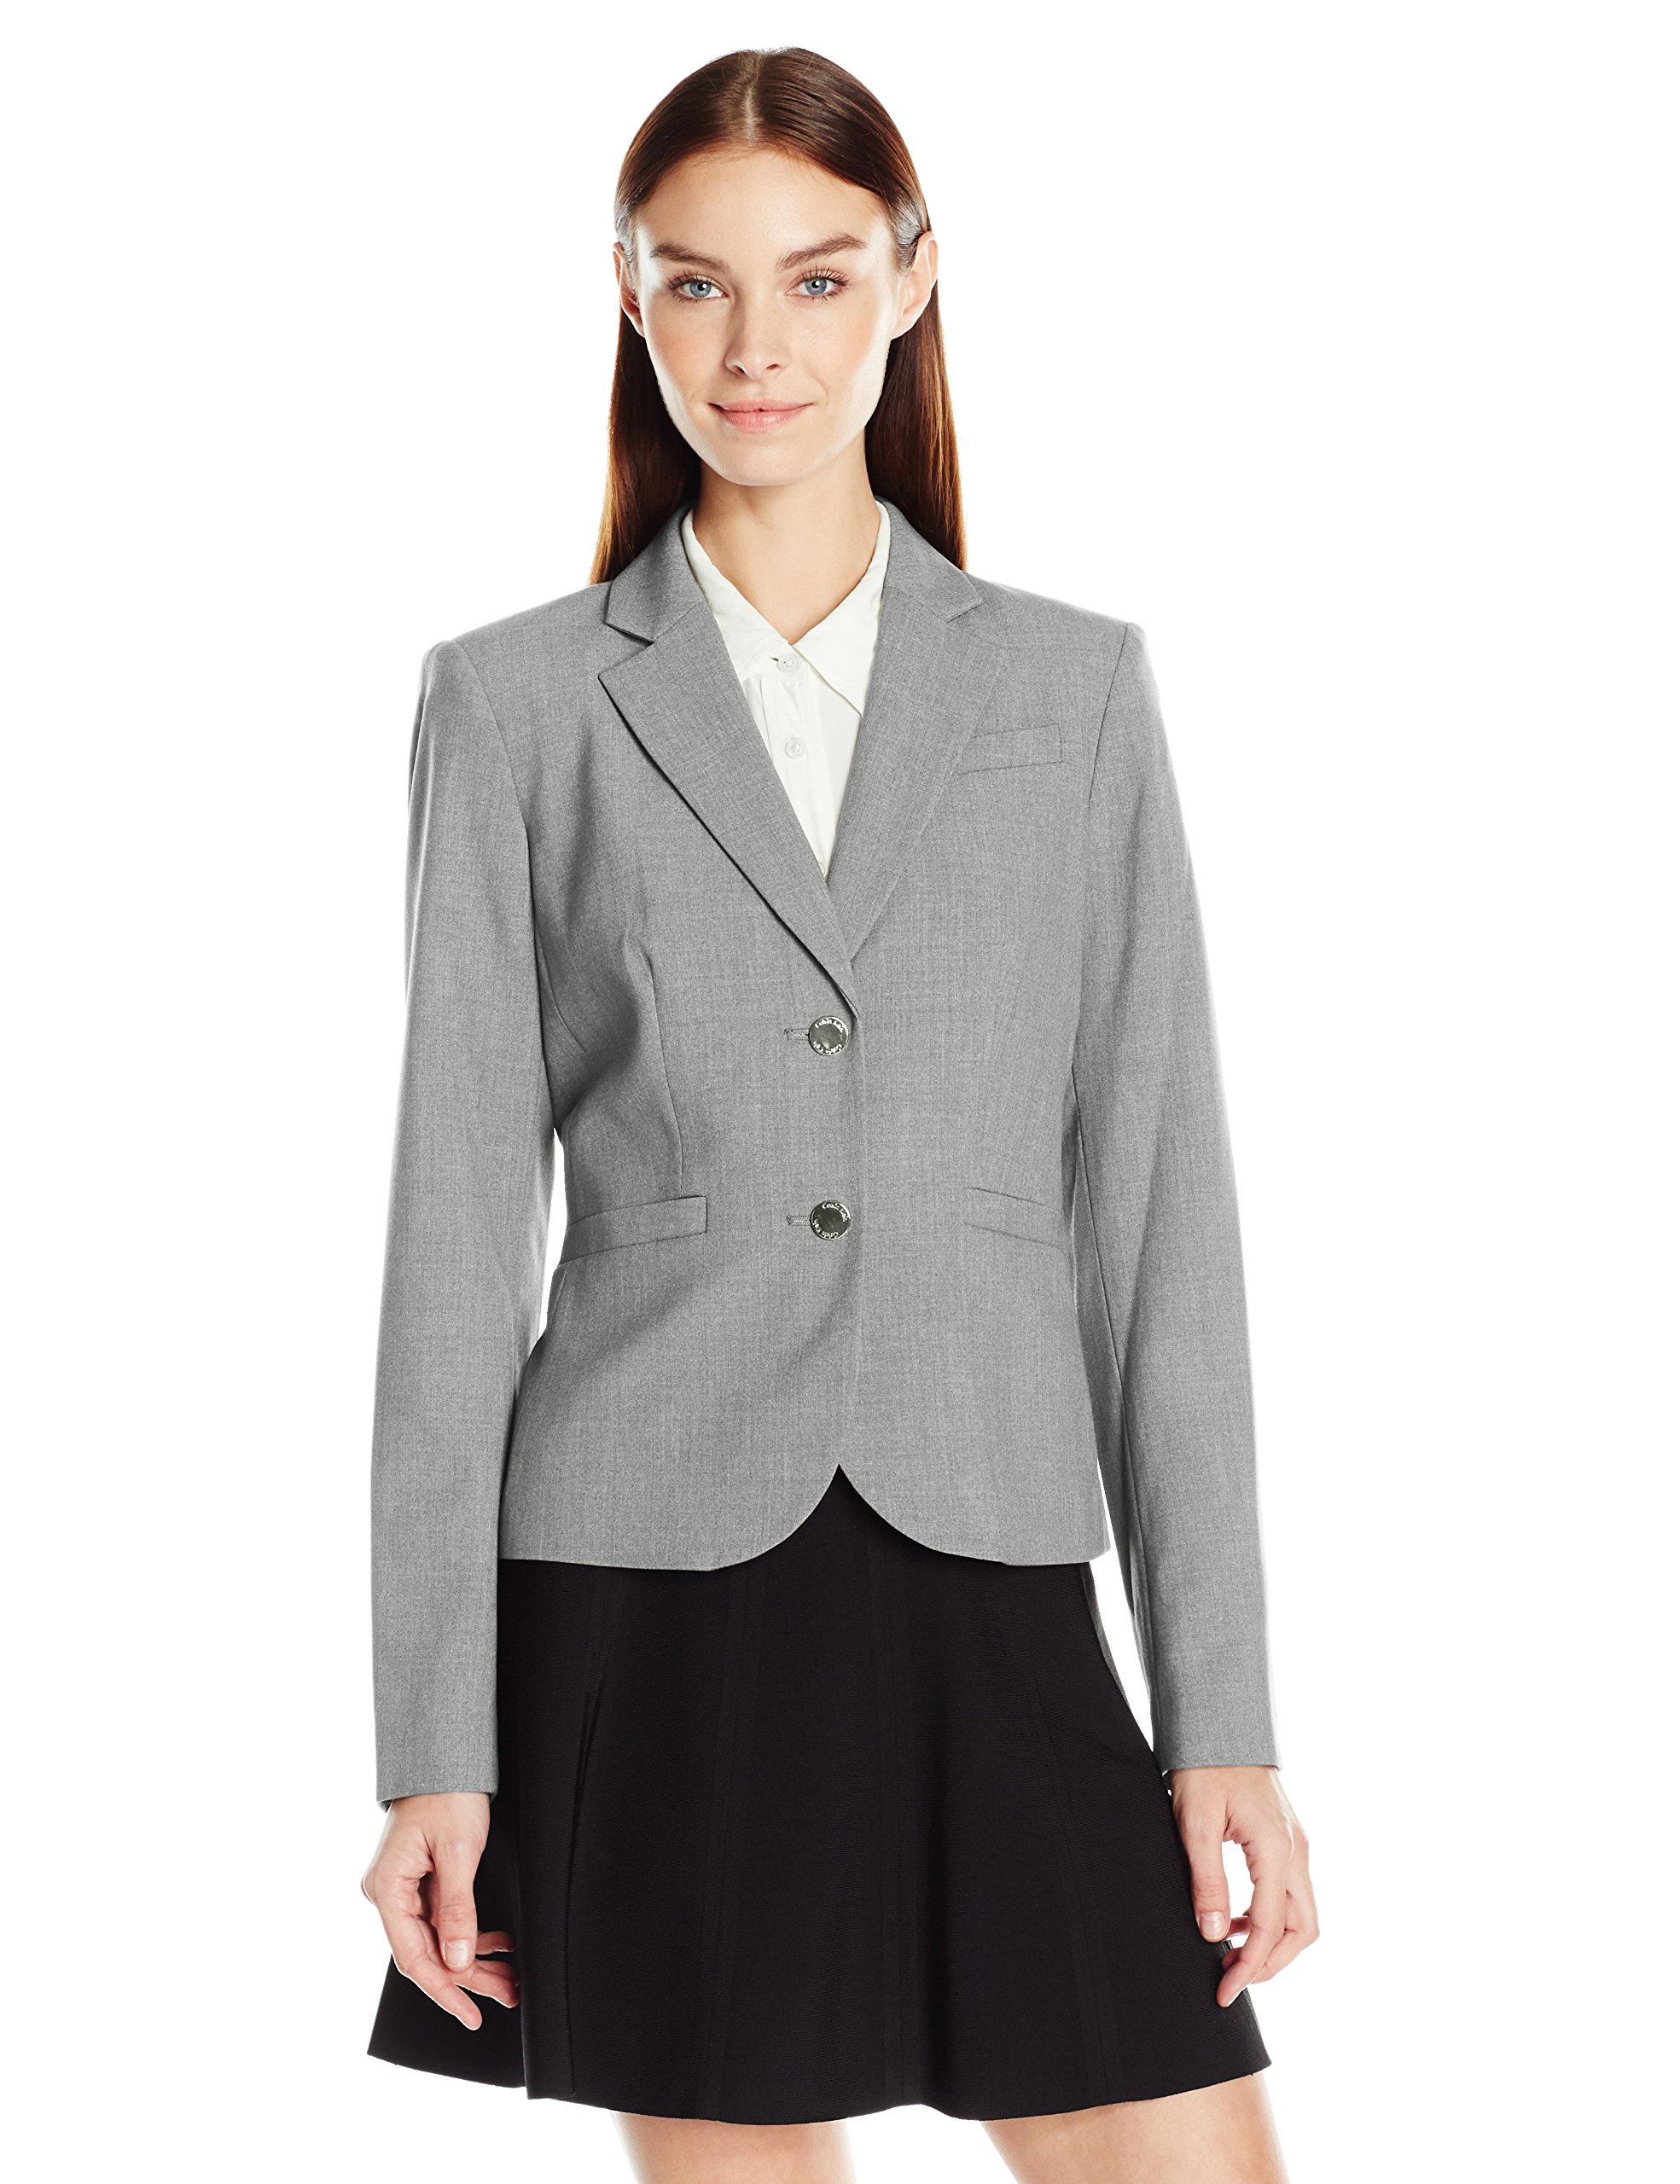 Calvin Klein Women's 2 Button Jacket in Lux, Tin, 6